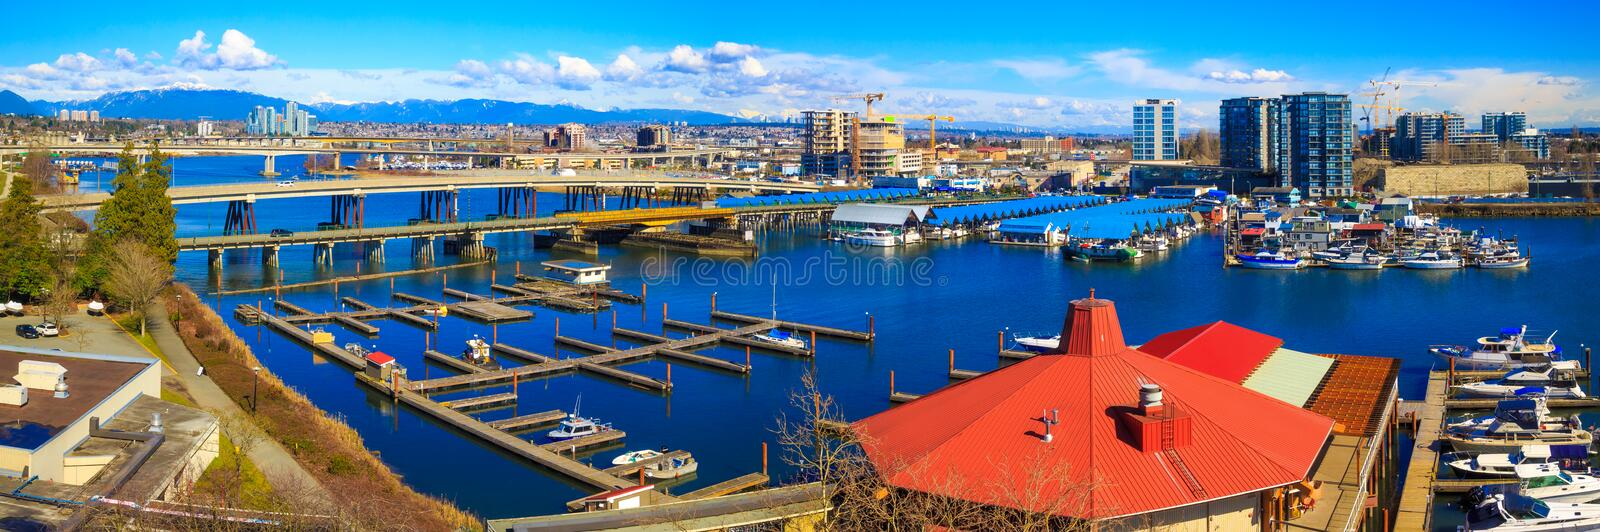 Vancouver Fraser River. Fraser River in Vancouver, British Columbia, Canada stock photo